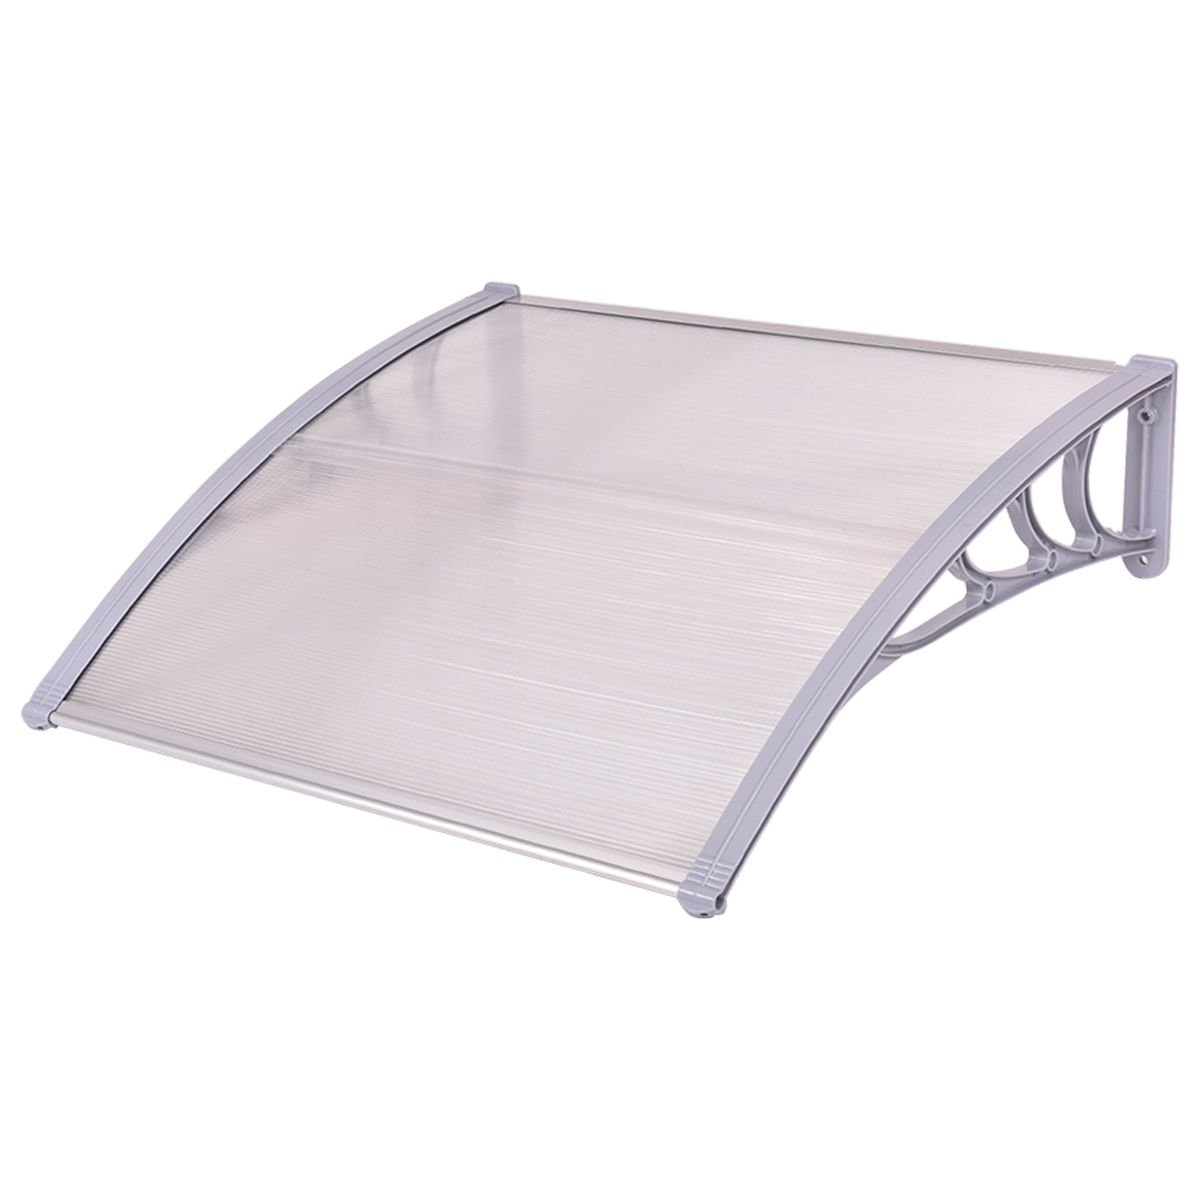 Tangkula 40''x 40'' Window Awning Modern Polycarbonate Cover Front Door Outdoor Patio Canopy Sun shetter 3 Colors (Clear with Grey Edge) by Tangkula